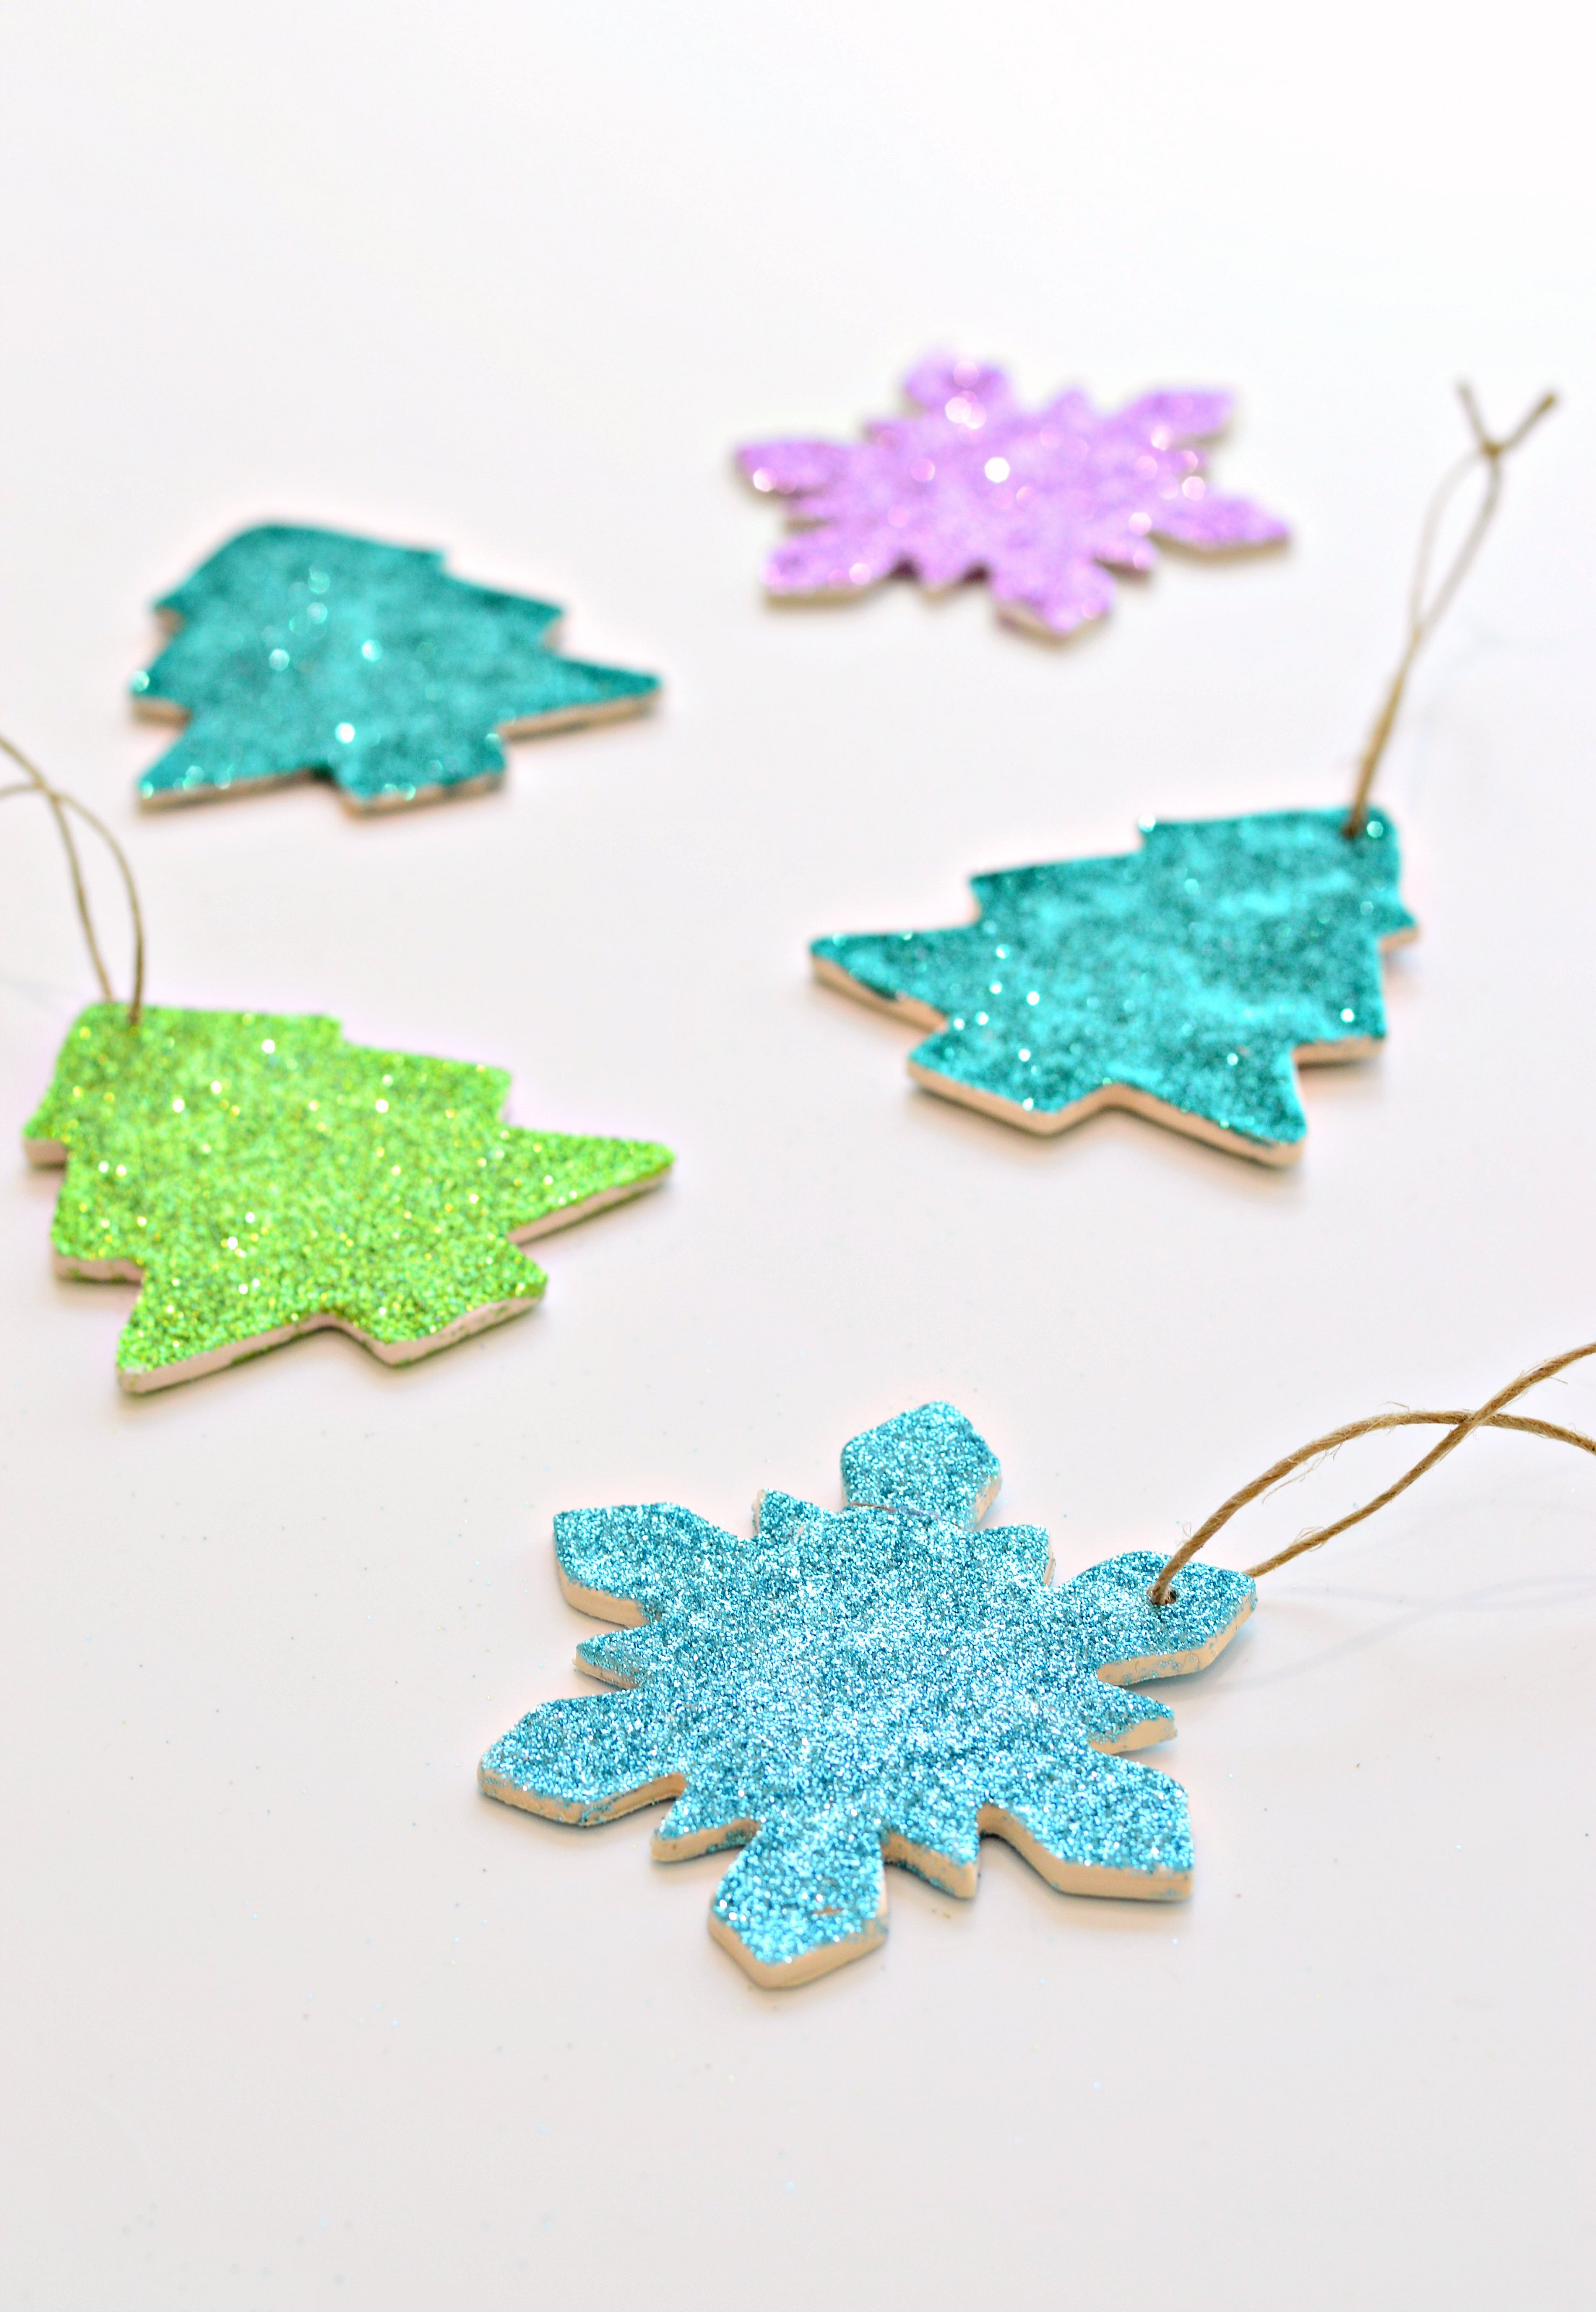 Diy Clay And Glitter Christmas Ornaments With Video Diy Home Decor Your Diy Family